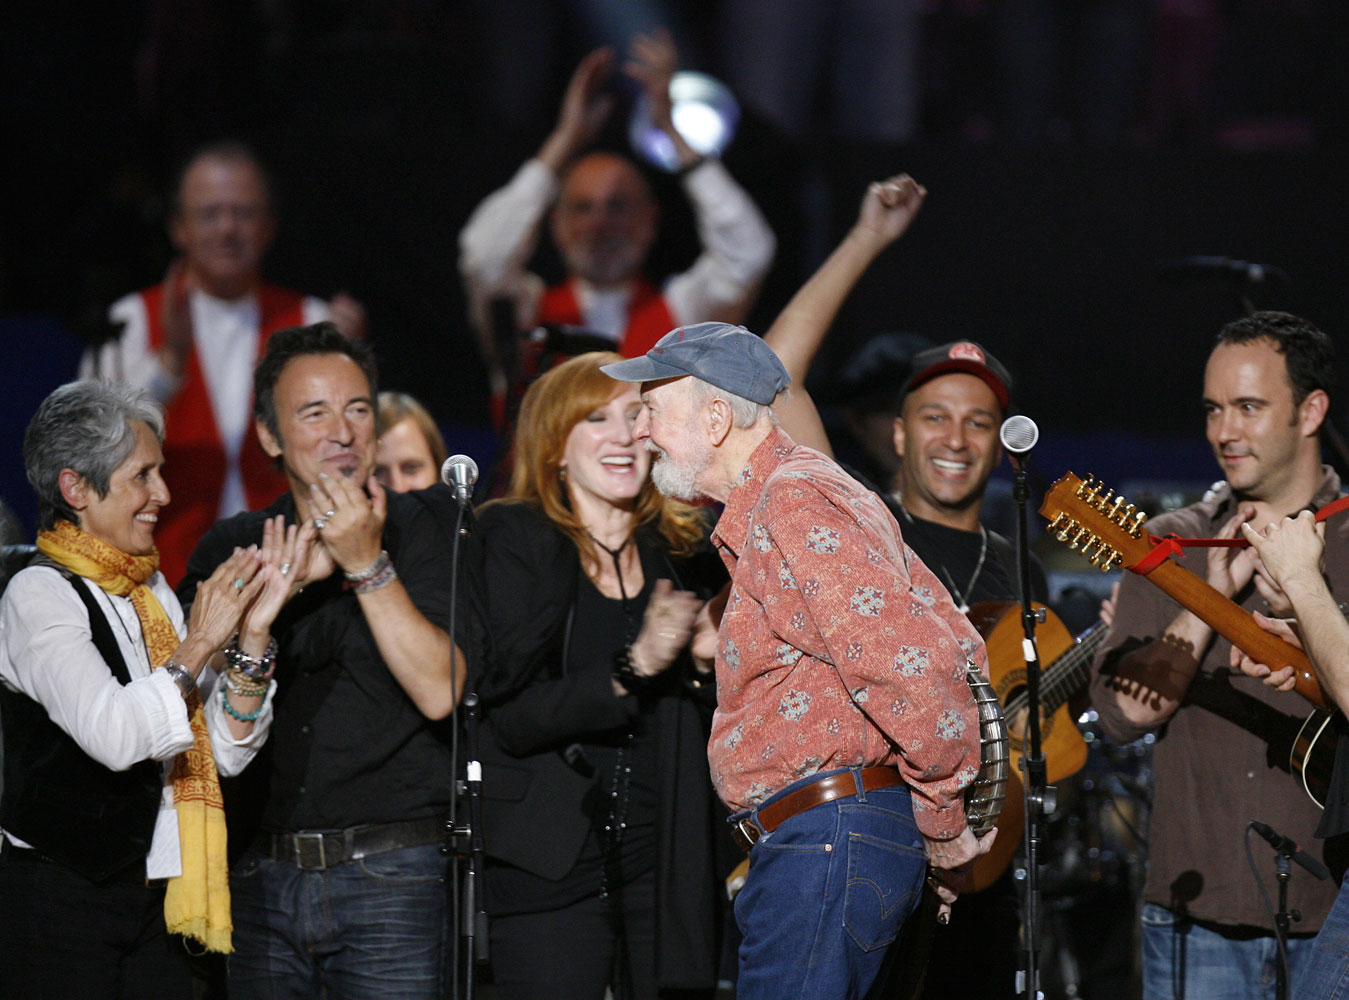 Pete Seeger (center) with Joan Baez, Bruce Springsteen, Patti Scialfa, Tom Morello and Dave Matthews during a concert celebrating Seeger's 90th birthday at Madison Square Garden in New York City, on May 3, 2009.